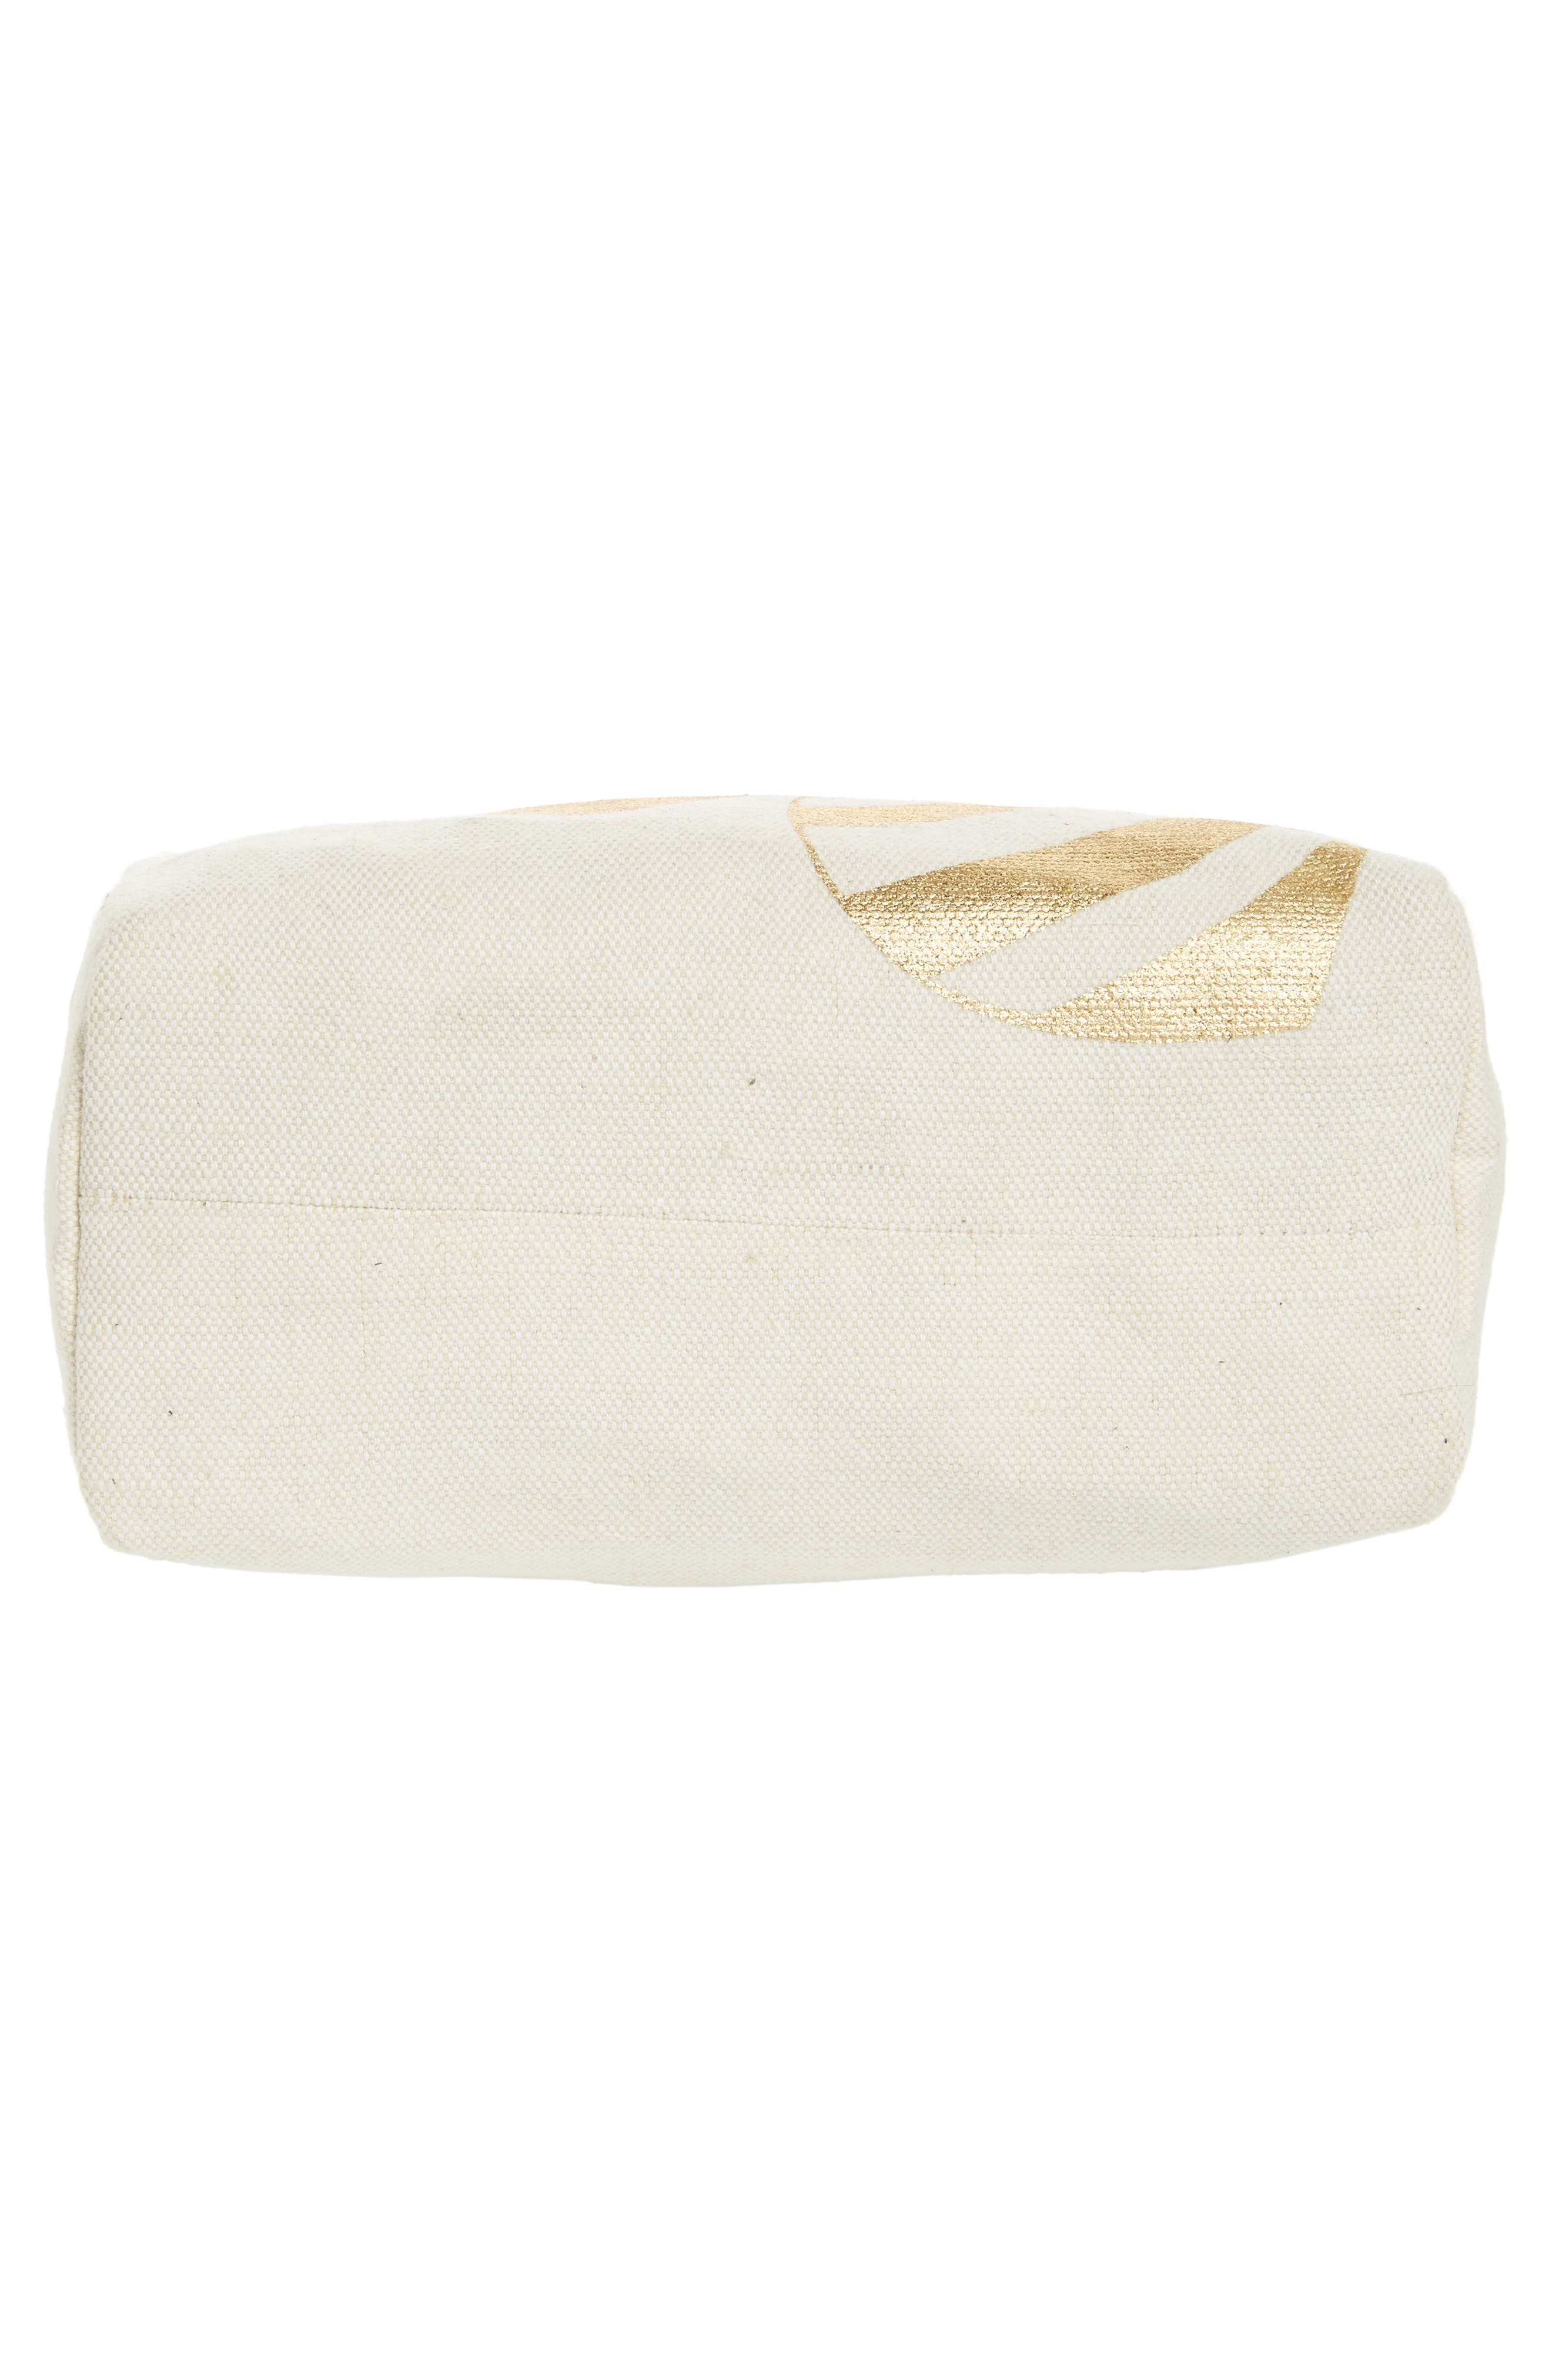 Bee Canvas Cosmetic Pouch,                             Alternate thumbnail 5, color,                             710